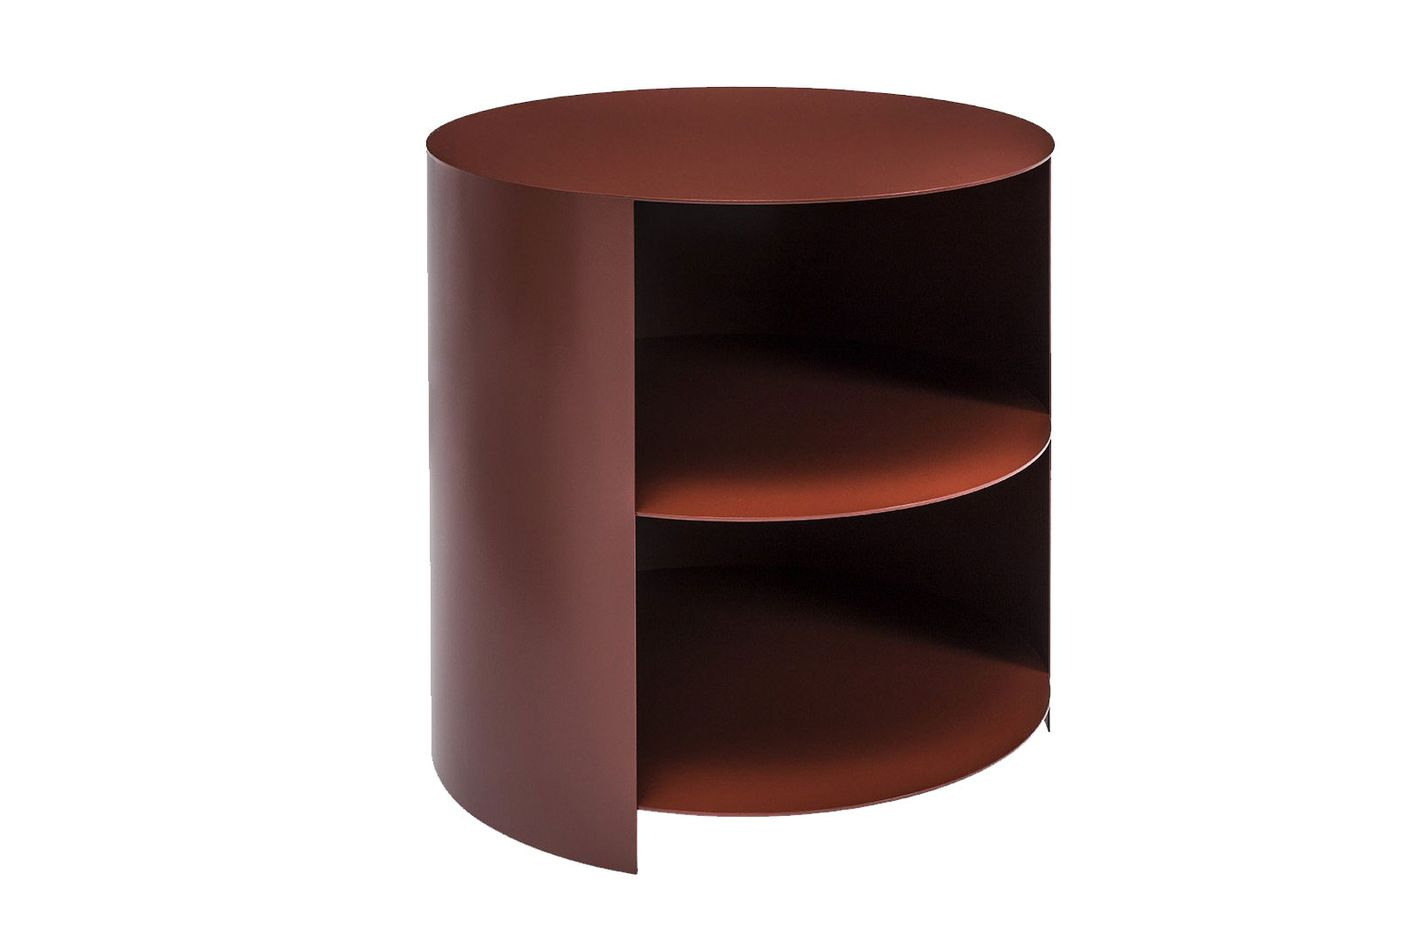 Hem Hide Side Table by Karoline Fesser